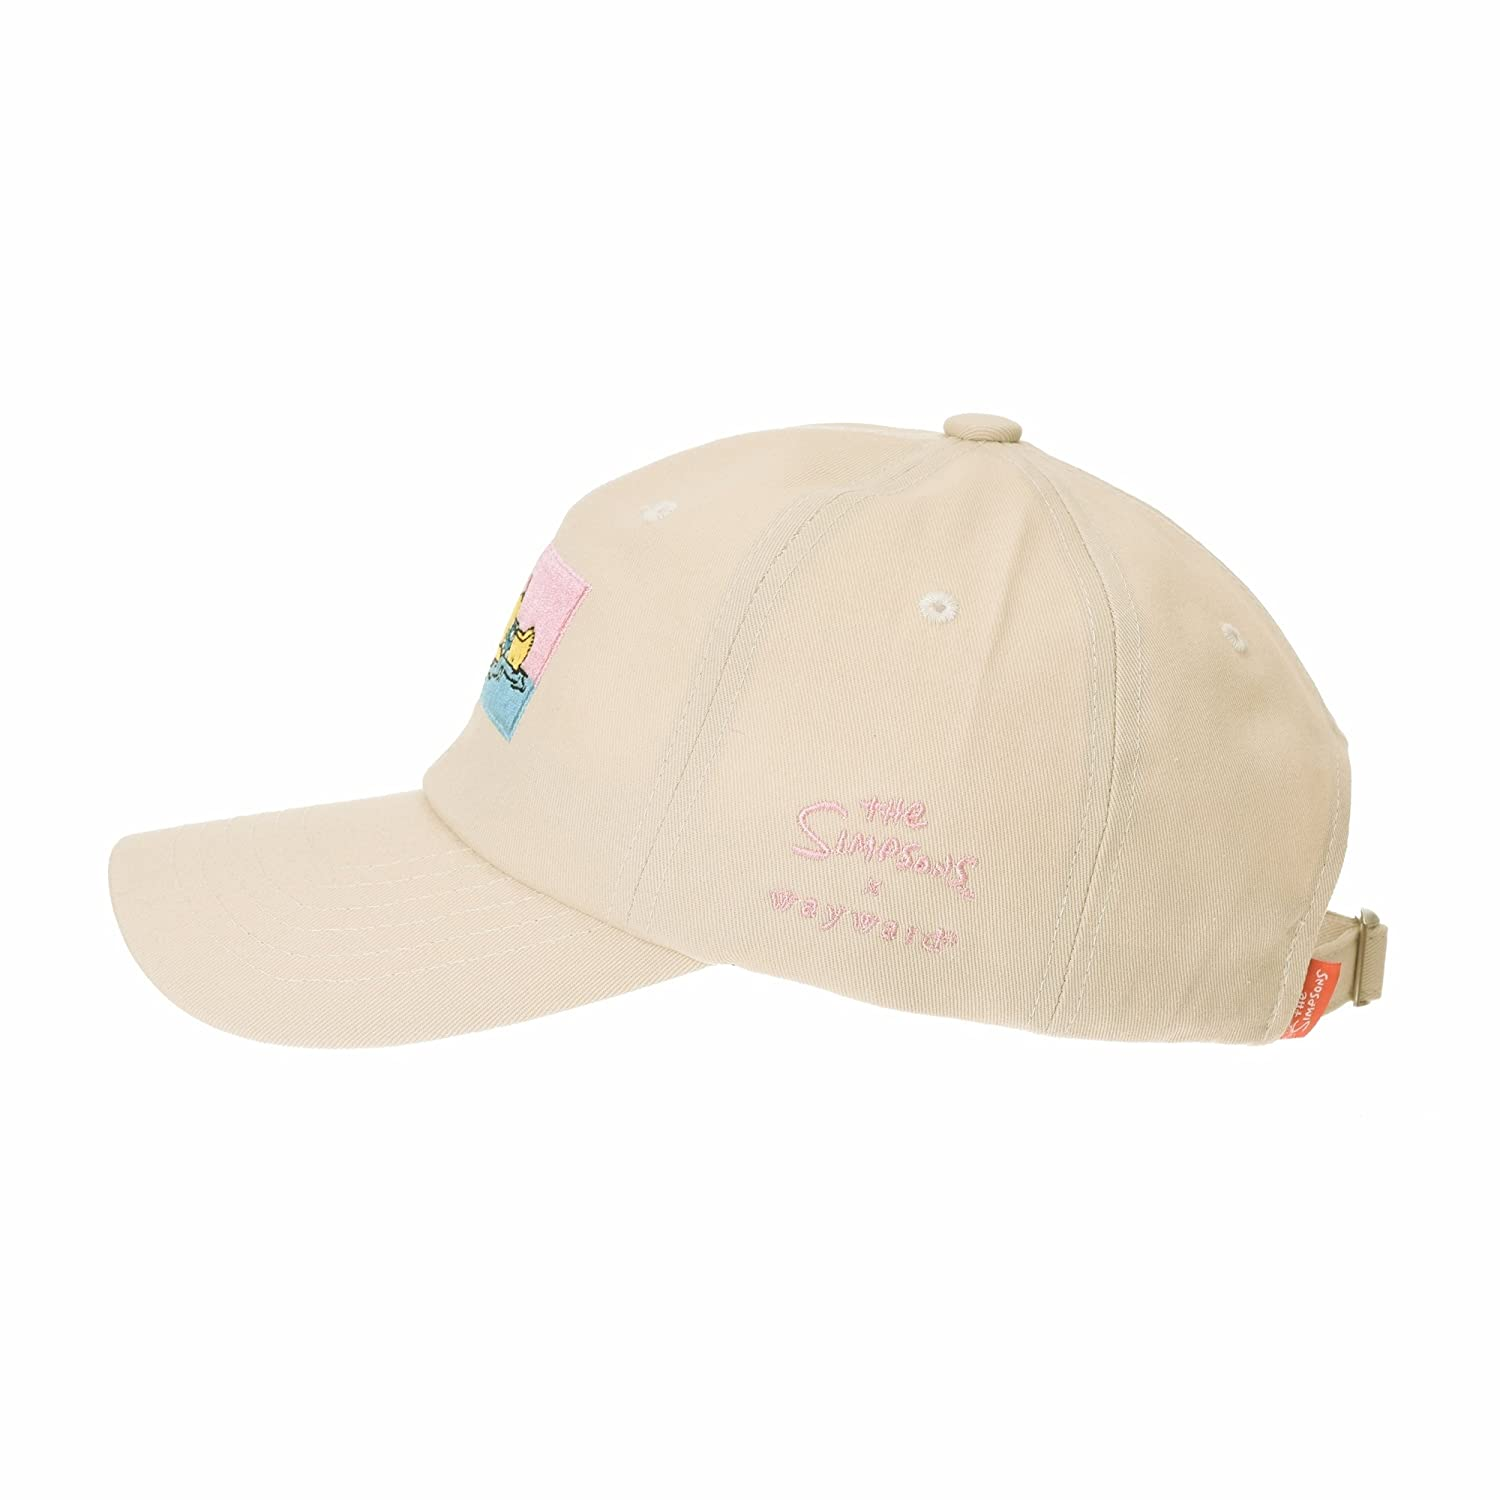 34772e1d003 WITHMOONS The Simpsons Baseball Cap Beach Homer Embroidery Hat HL11032 ( Beige)  Amazon.co.uk  Clothing